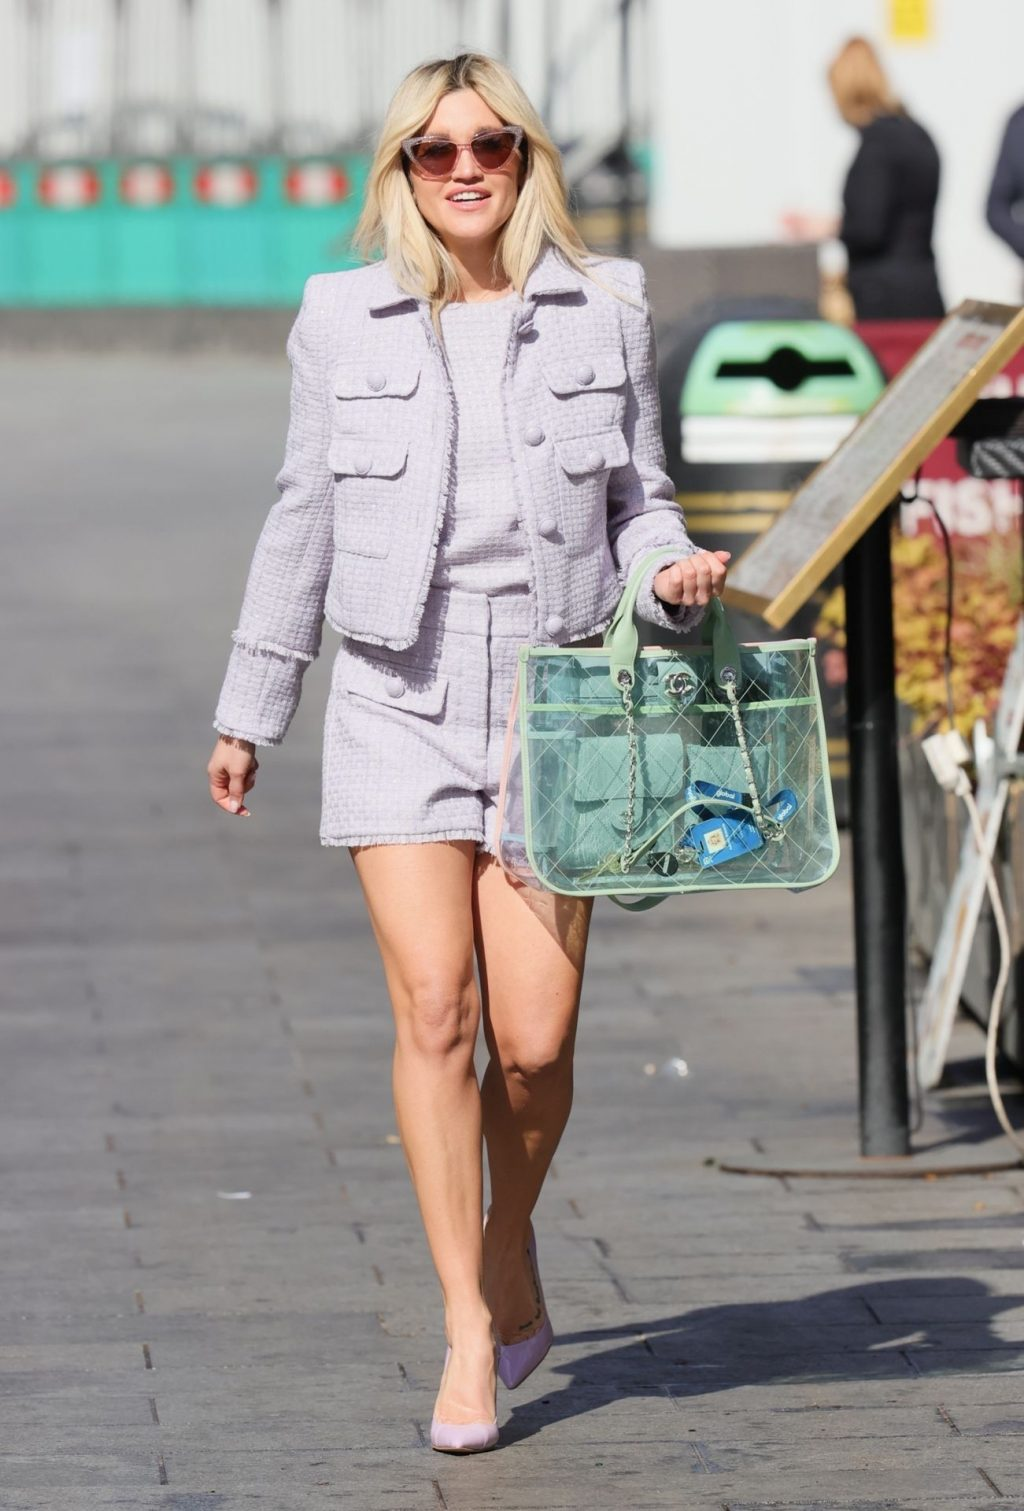 Ashley Roberts Looks Chic at the Heart Radio Studios in London (56 Photos)